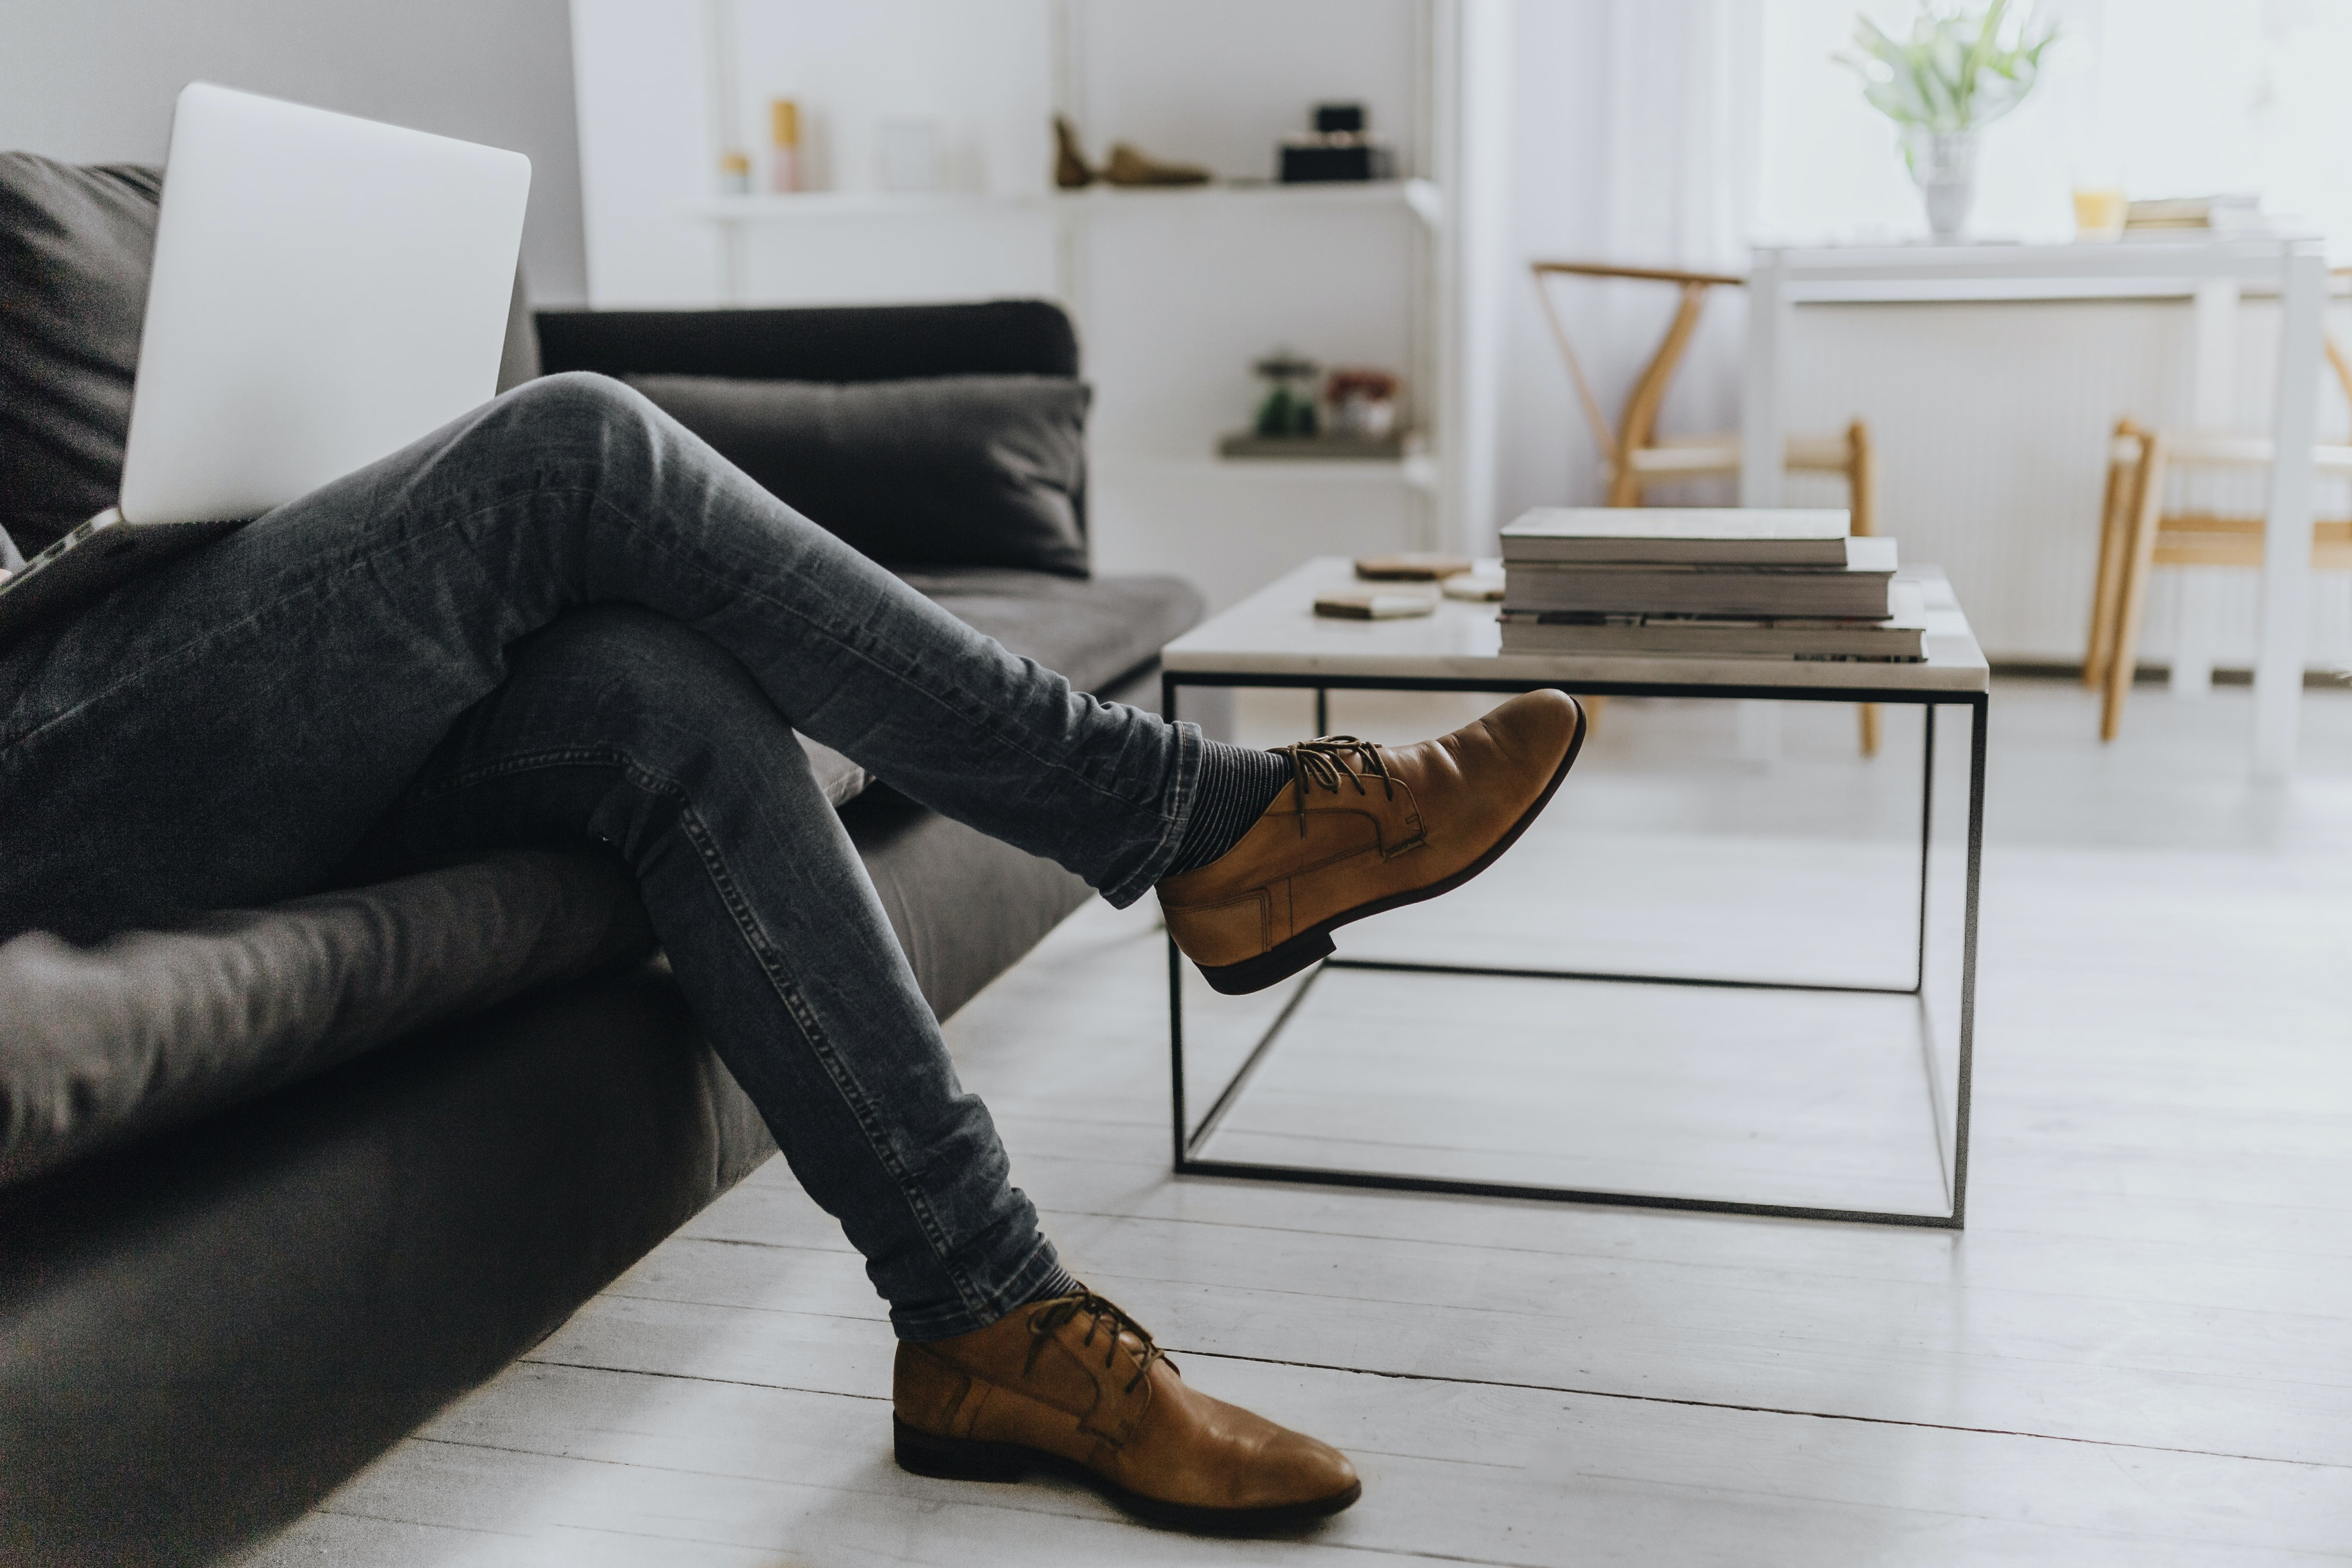 Furnishing student properties as a landlord